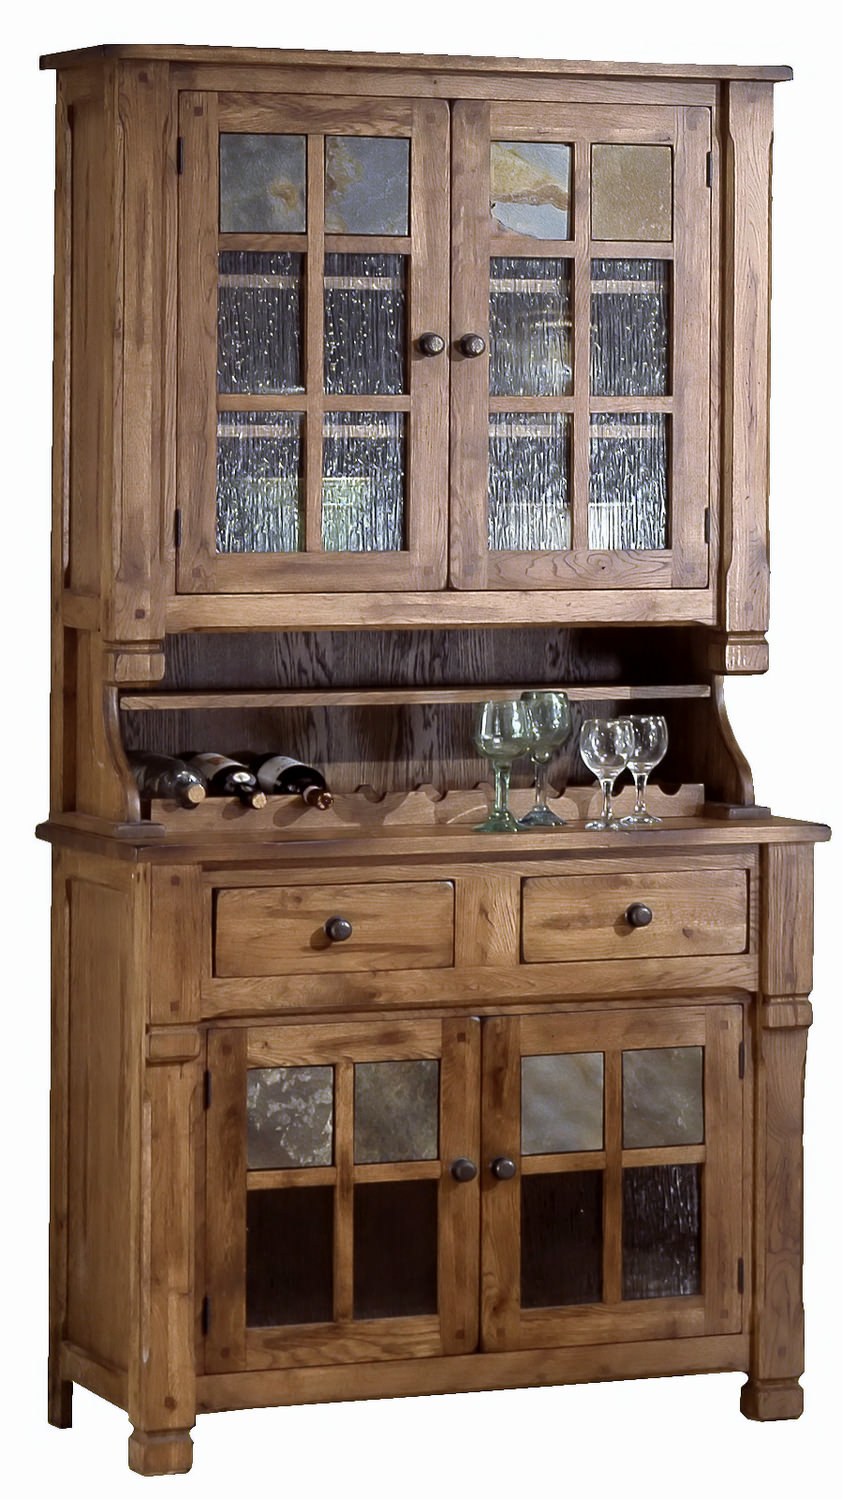 Kitchen Buffet Hutch Furniture Buffets China Cabinets And Sideboards Hom Furniture